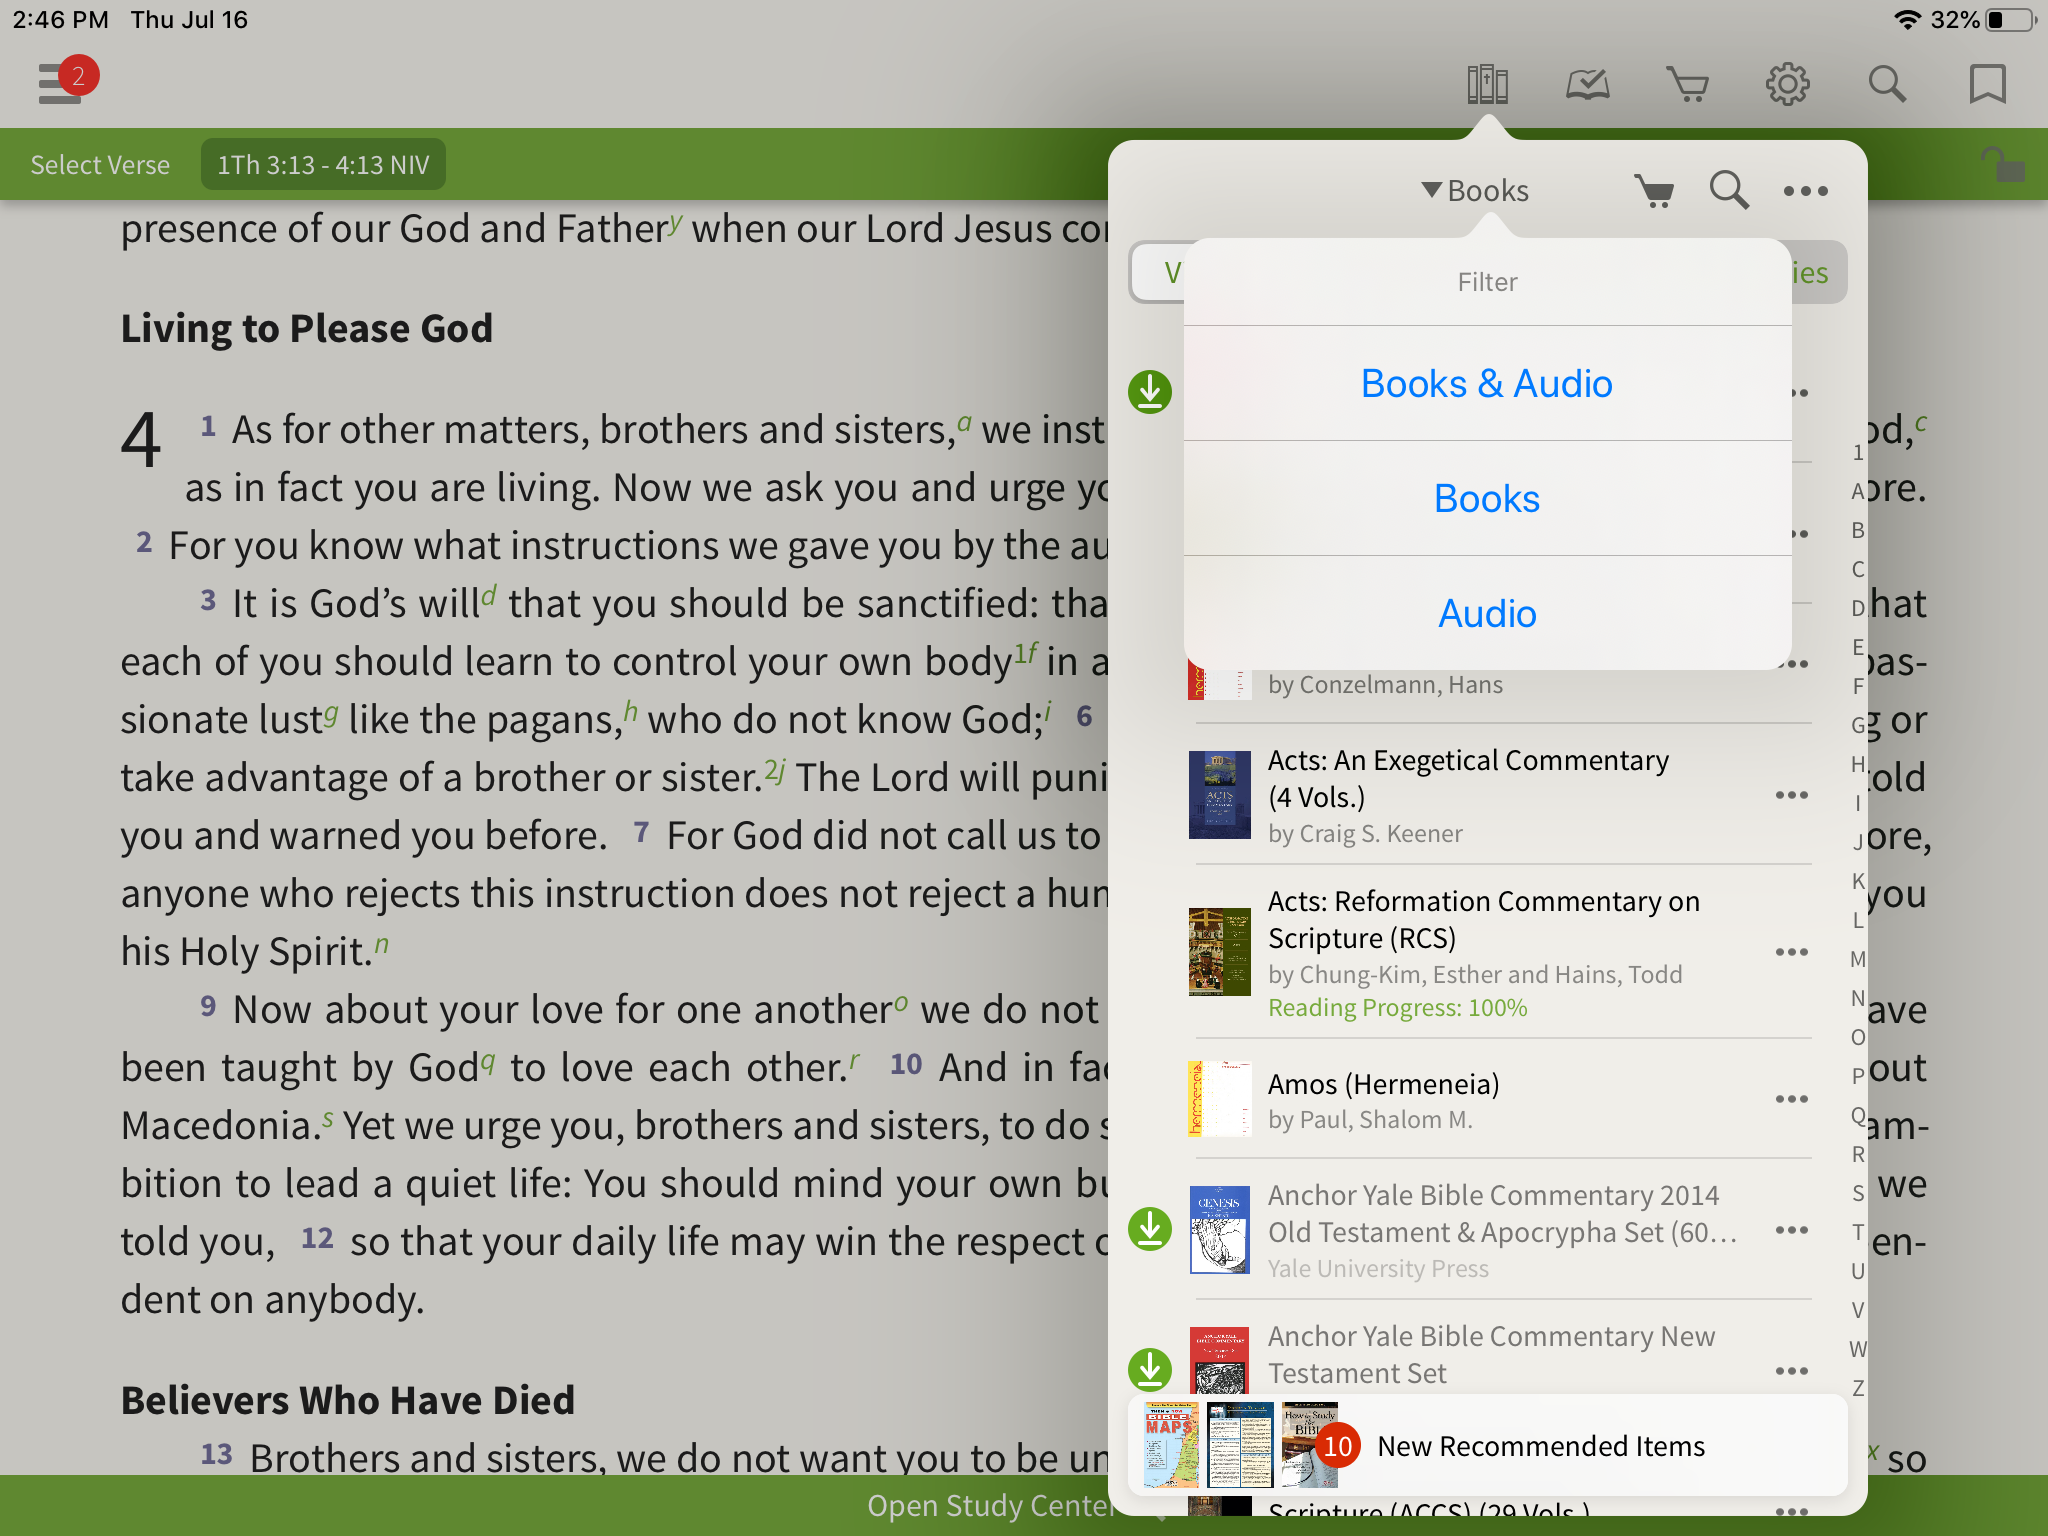 Switching between books and audio in the library of the Olive Tree bible App